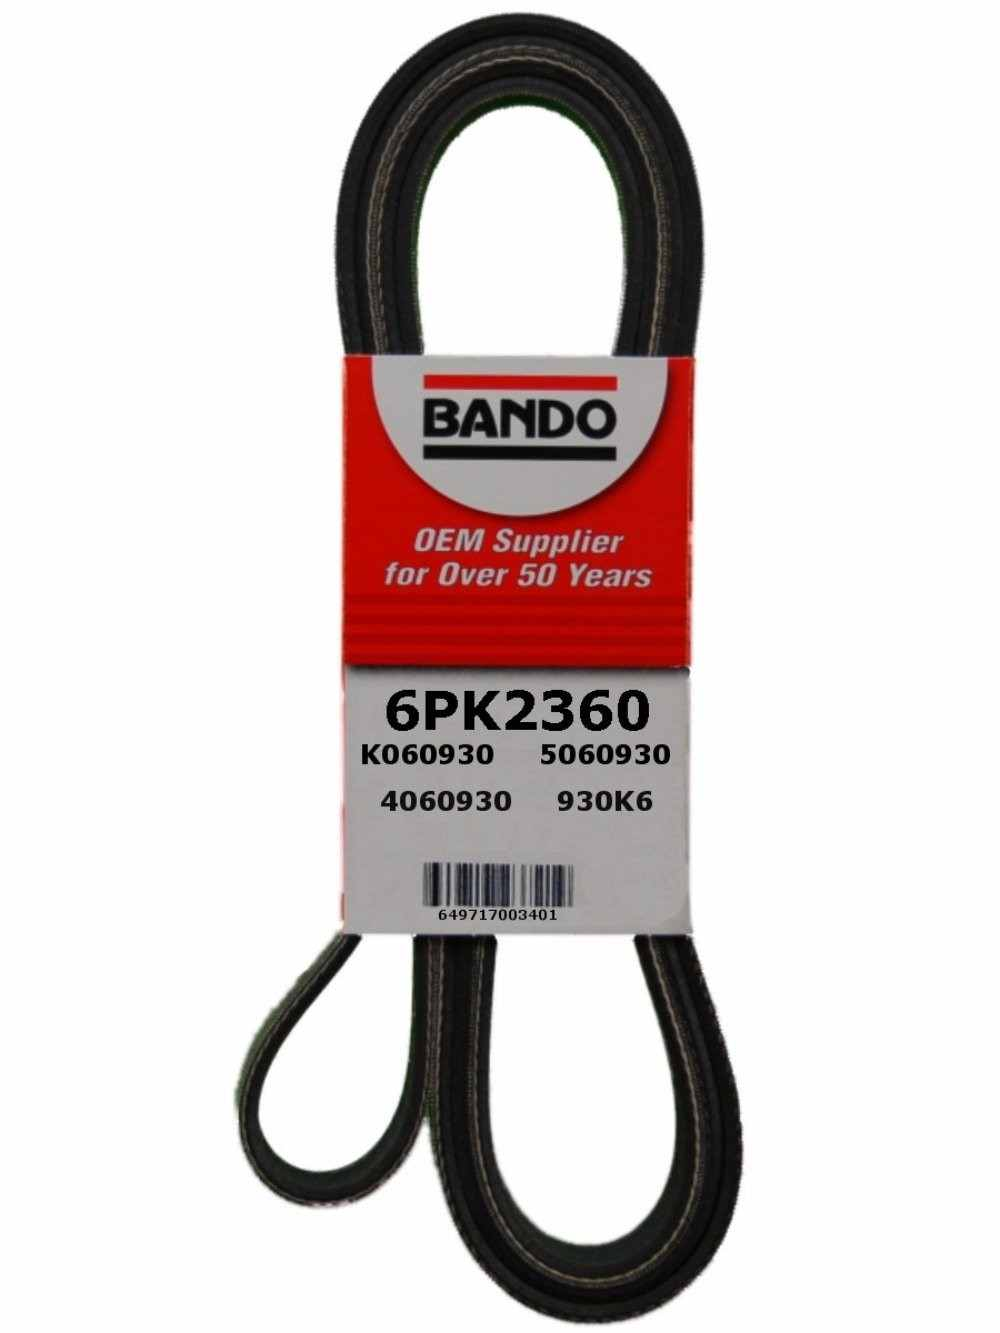 BANDO - Serpentine Belt (Water Pump, Alternator, Air Conditioning and Power Steering) - BWO 6PK2360